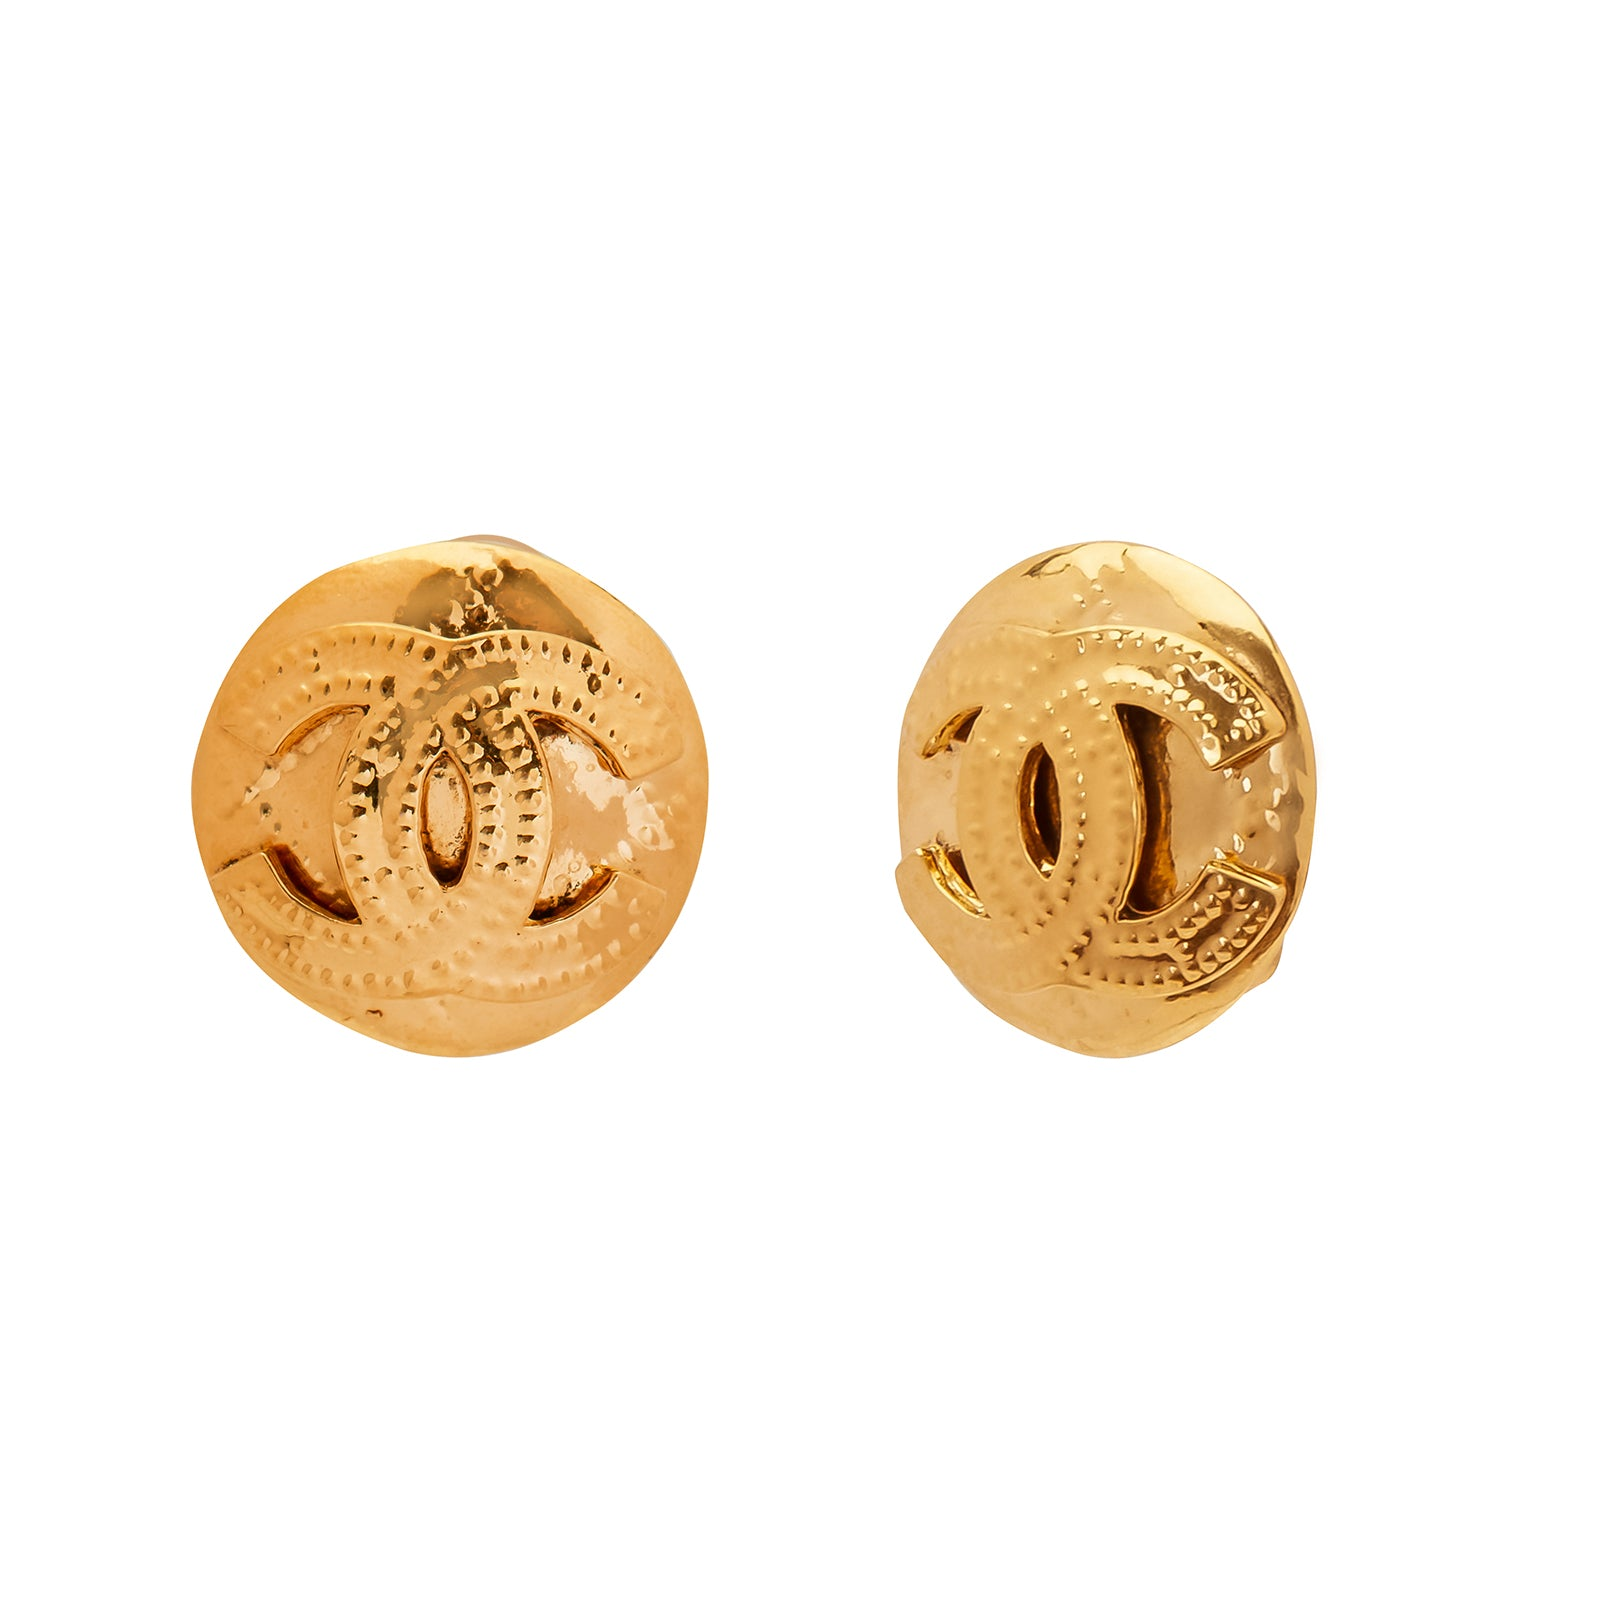 Antique & Vintage Jewelry Chanel Quilted Disk Earrings - Earrings - Broken English Jewelry